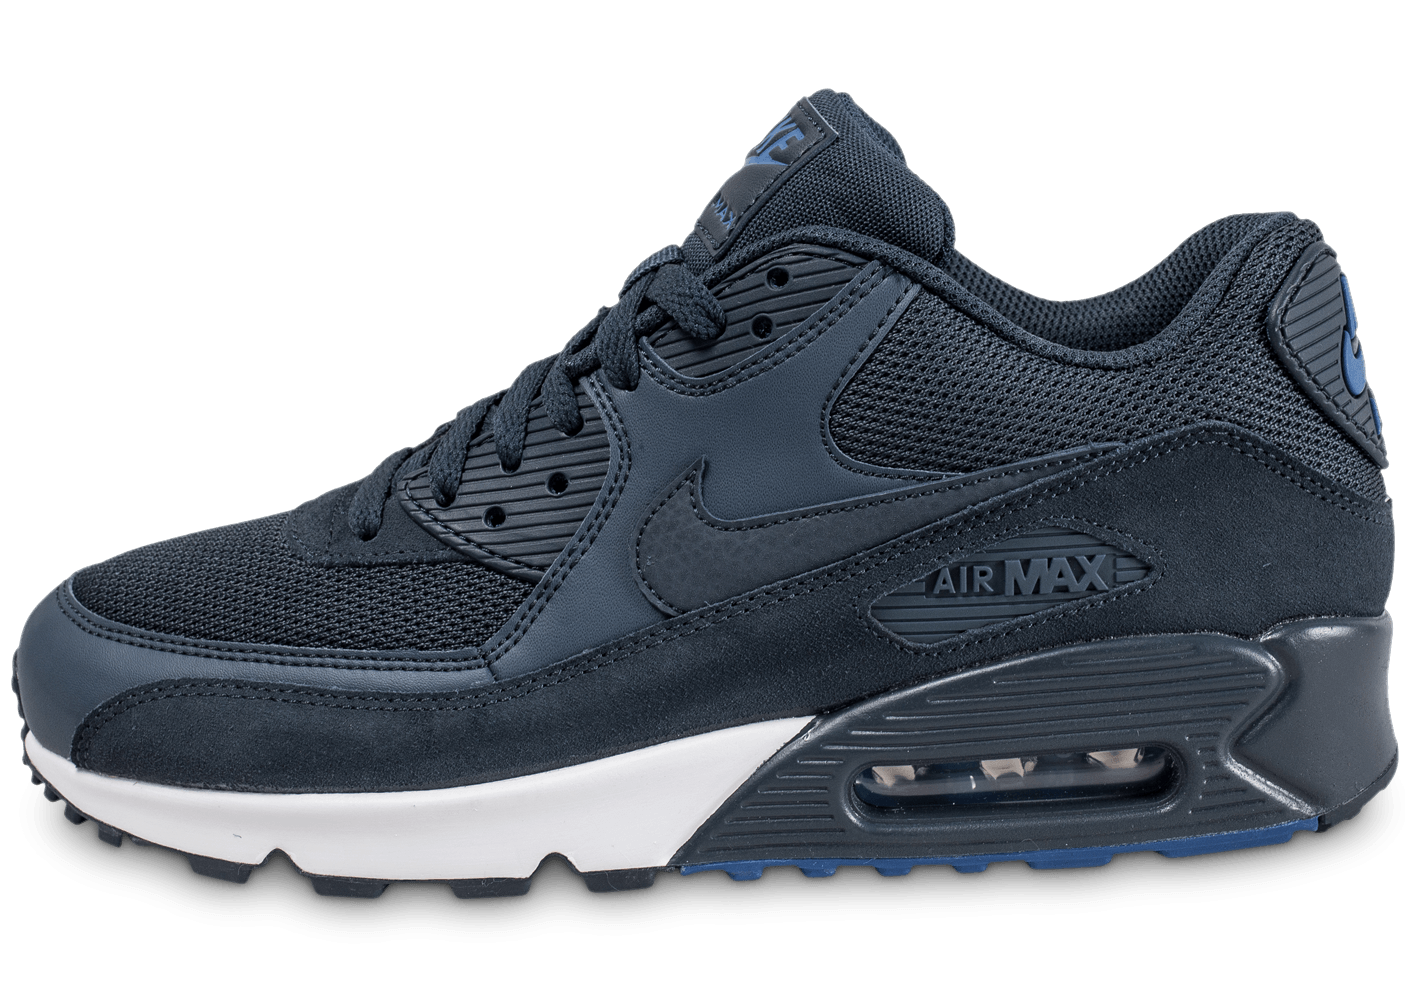 nike air max 90 essential bleue chaussures homme chausport. Black Bedroom Furniture Sets. Home Design Ideas